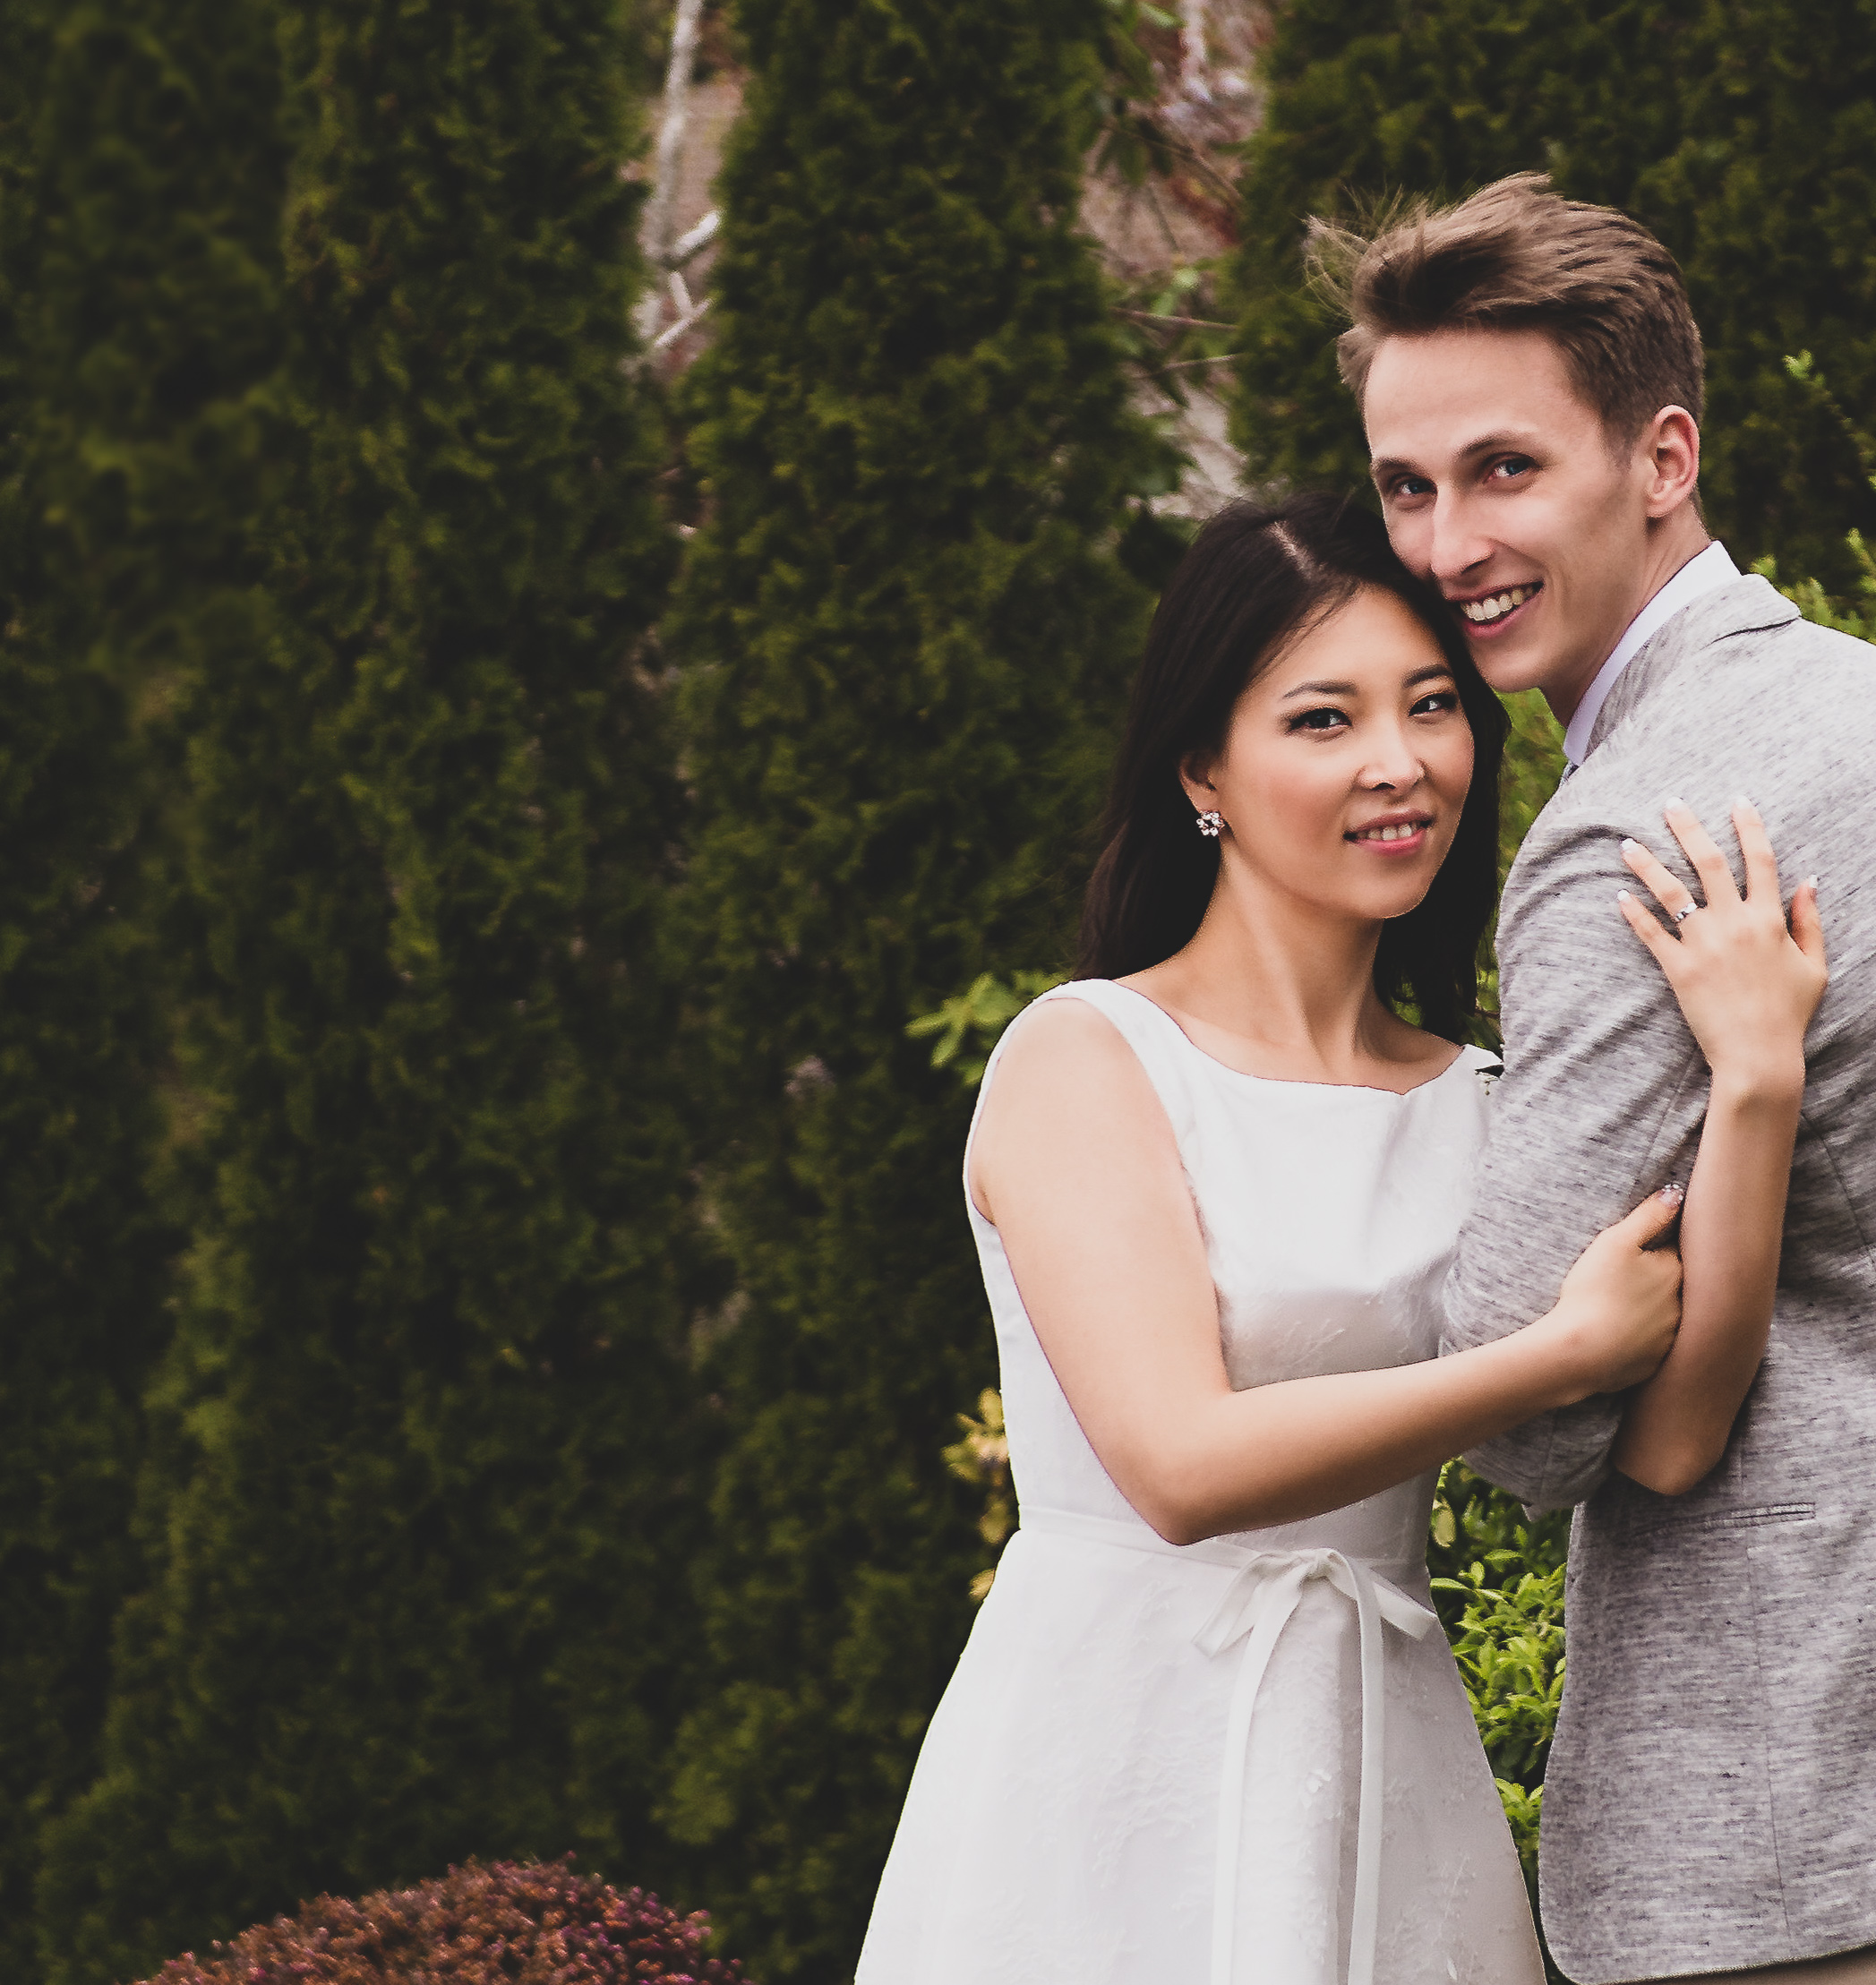 Simple home wedding | THE RIDHT SIDE OF FIFTY